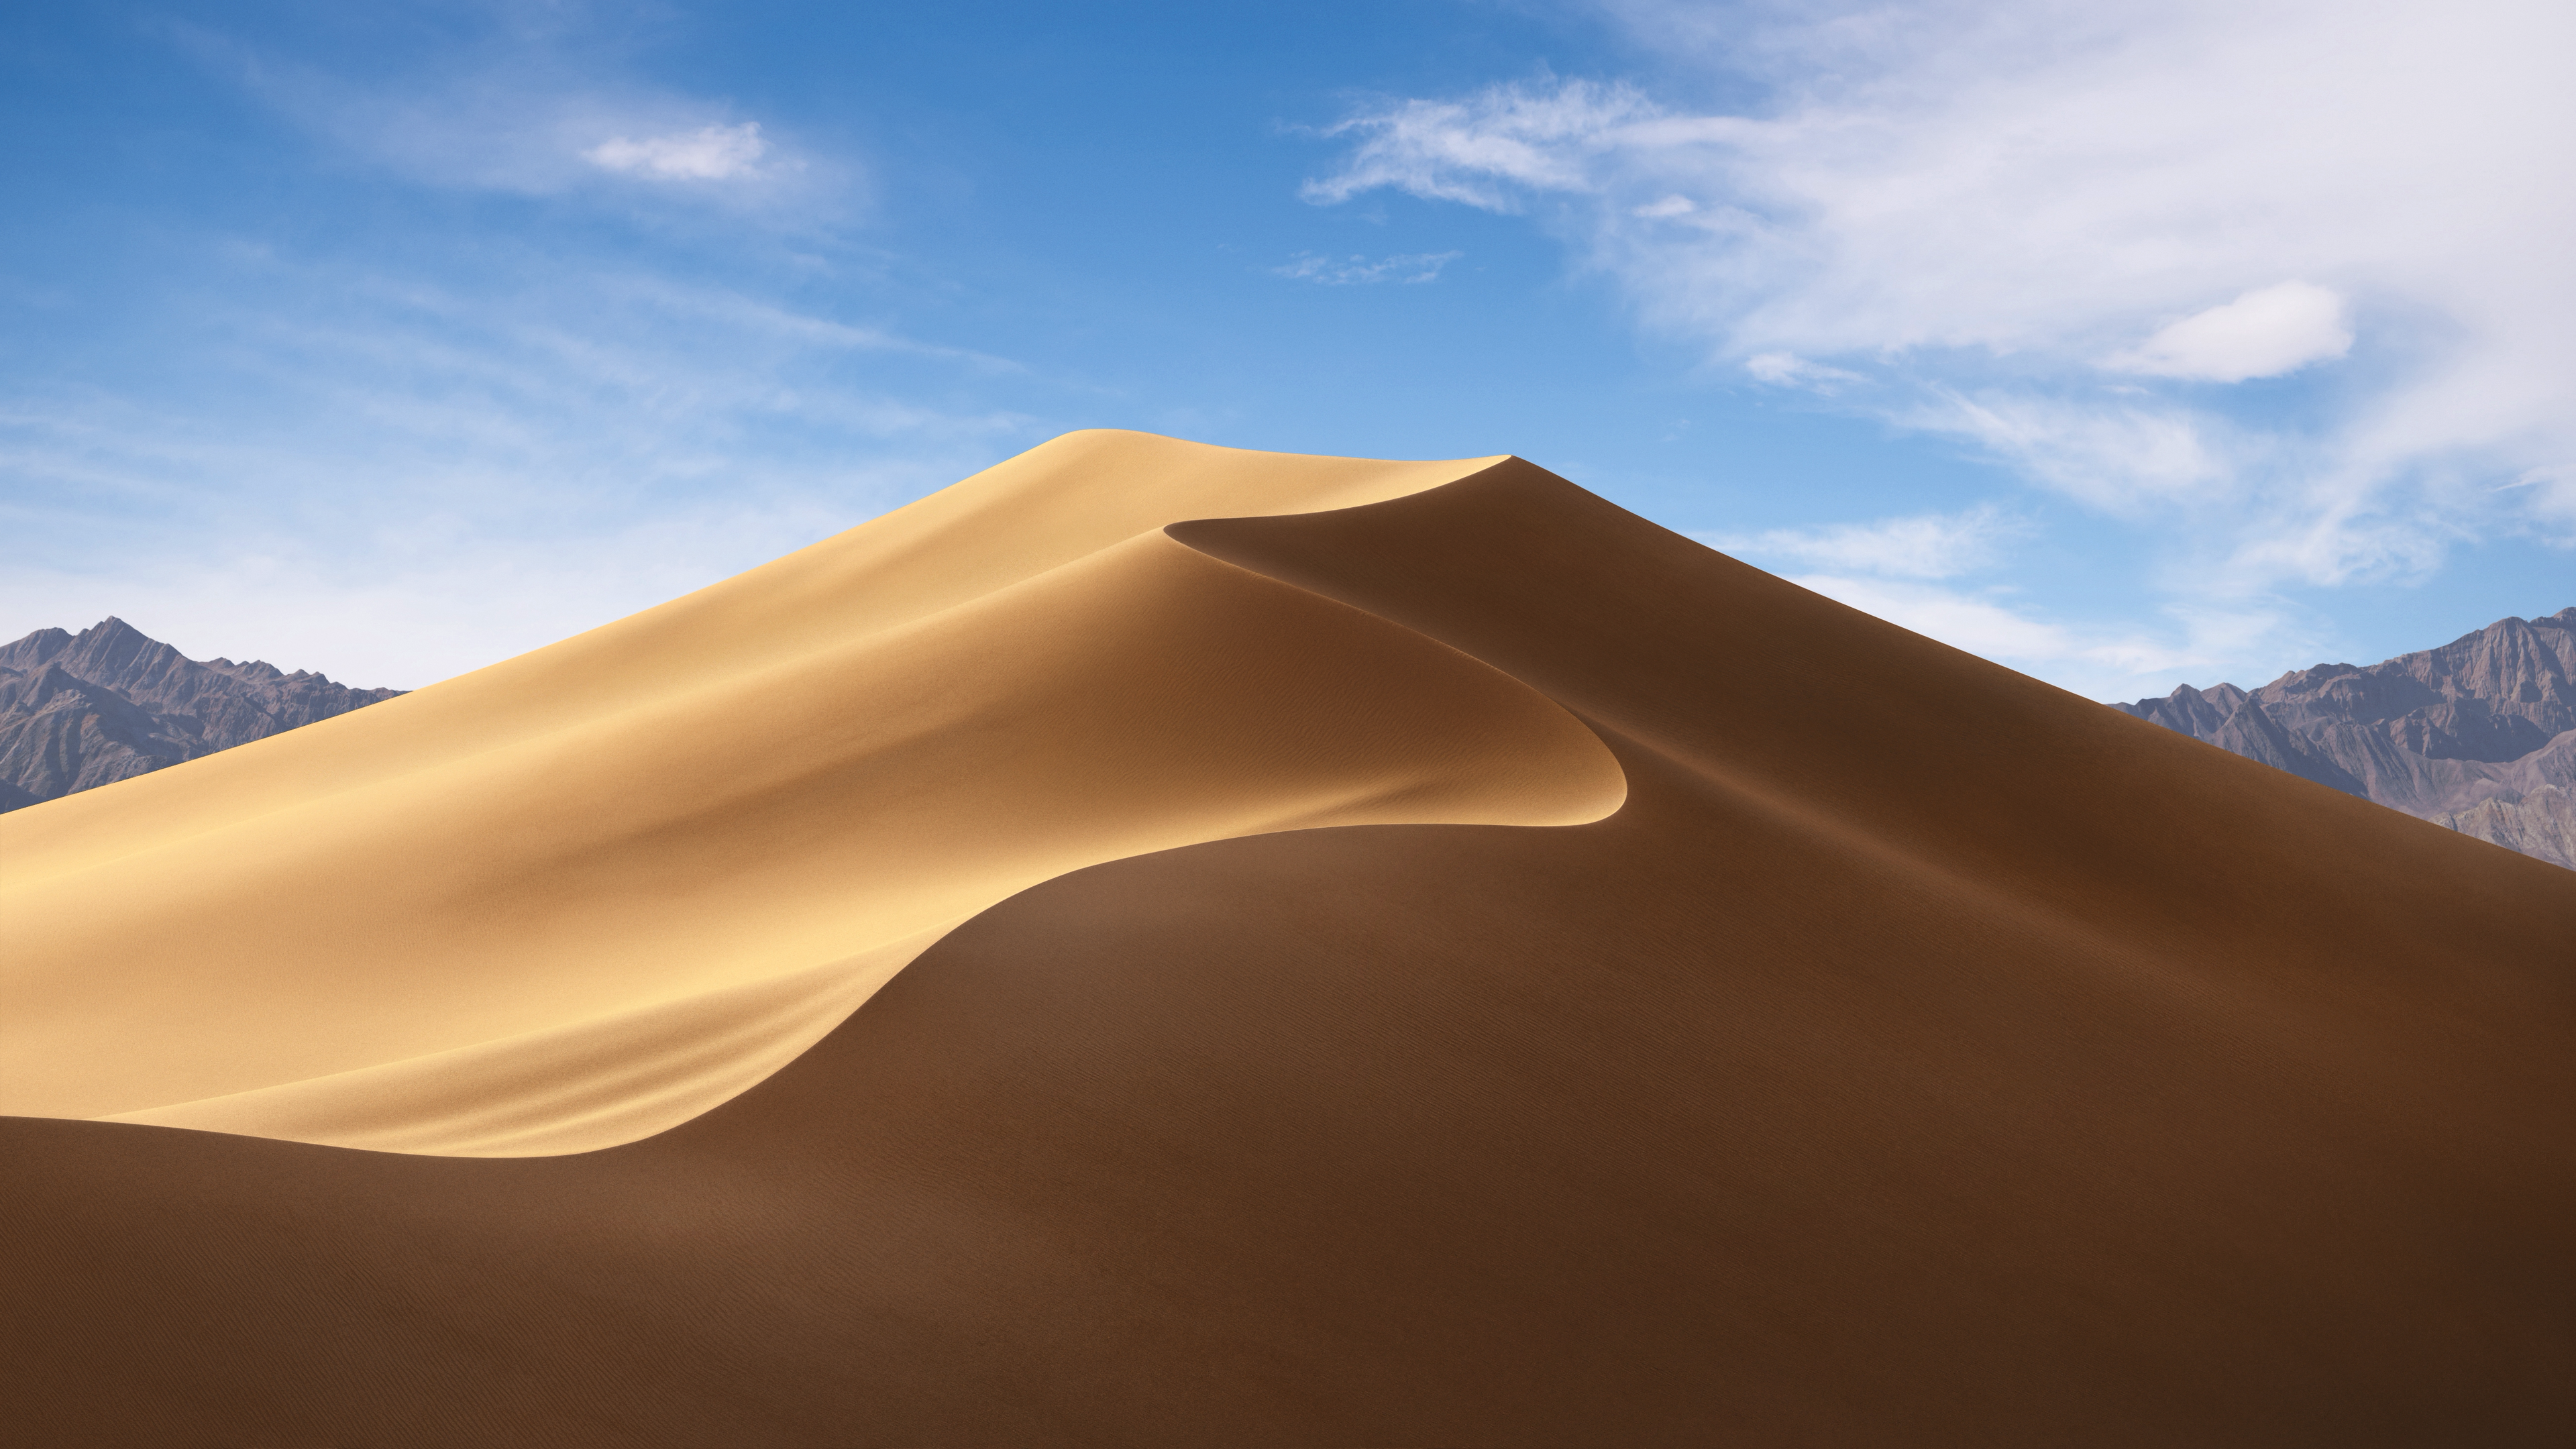 Mojave includes an assortment of new wallpapers.